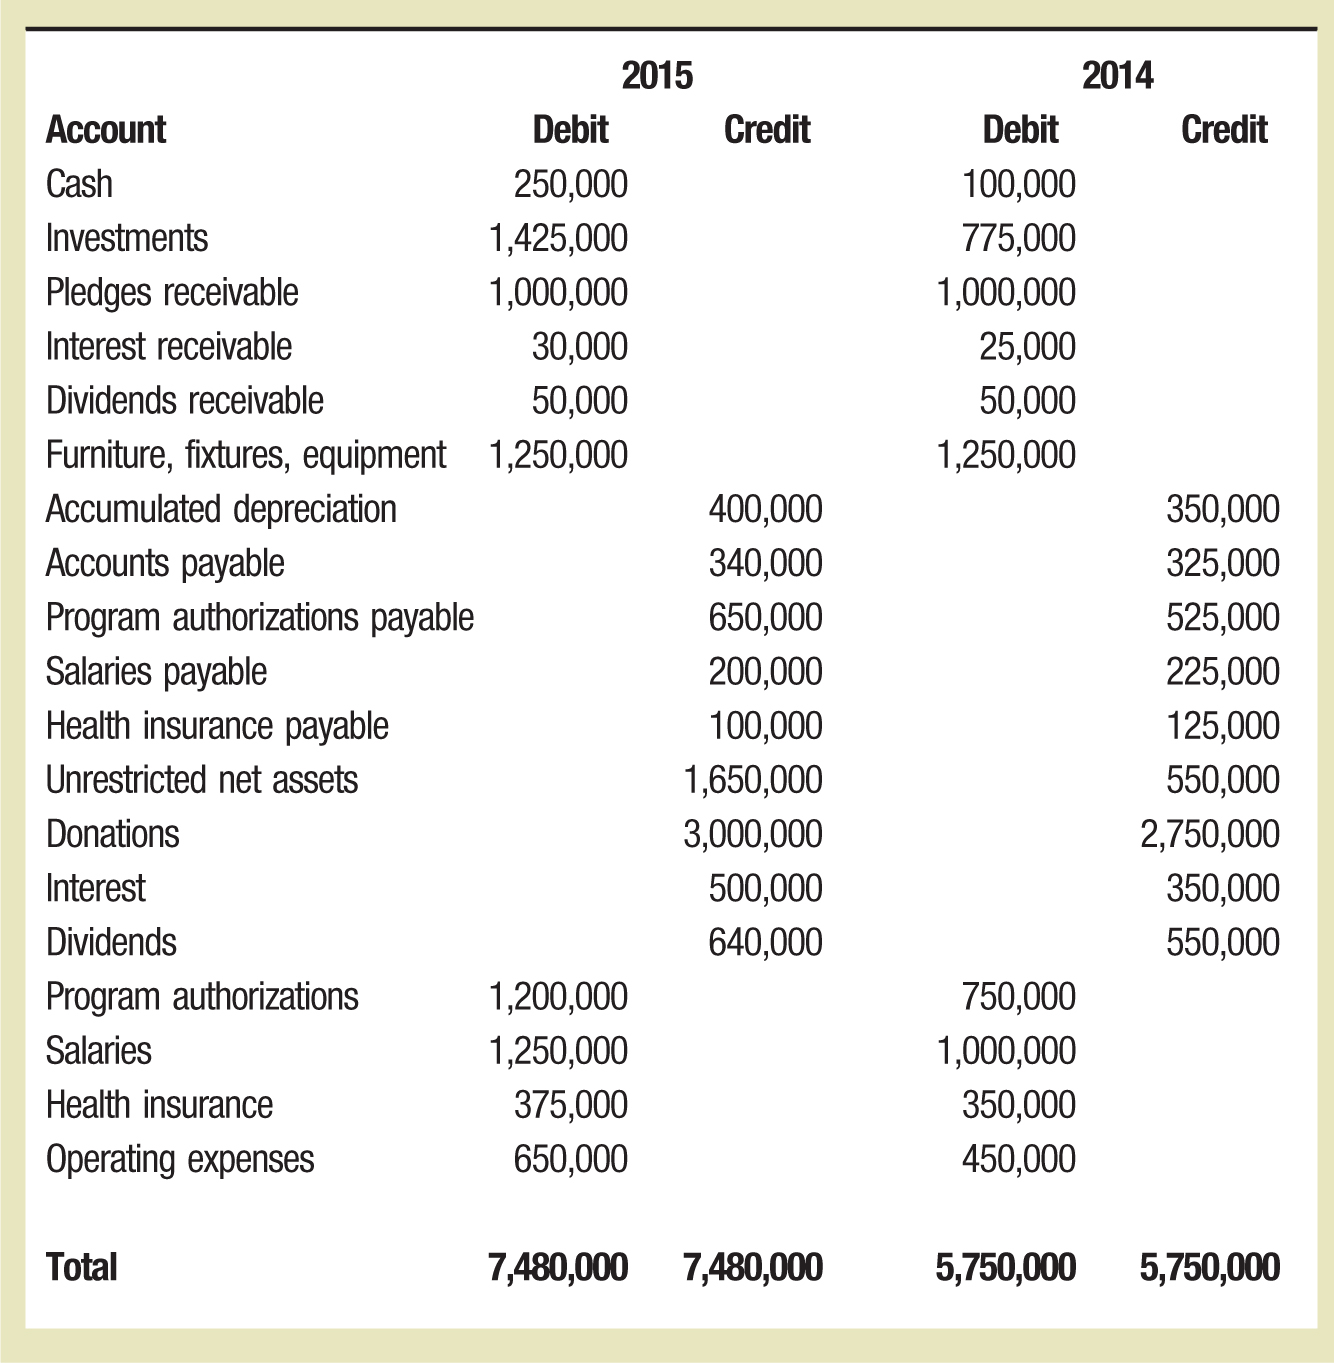 2015; 2014 Account; Debit; Credit; Debit; Credit Cash; 250,000; 100,000 Investments; 1,425,000; 775,000 Pledges receivable; 1,000,000; 1,000,000 Interest receivable; 30,000; 25,000 Dividends receivable; 50,000; 50,000 Furniture, fixtures, equipment; 1,250,000; 1,250,000 Accumulated depreciation; 400,000; 350,000 Accounts payable; 340,000; 325,000 Program authorizations payable; 650,000; 525,000 Salaries payable; 200,000; 225,000 Health insurance payable; 100,000; 125,000 Unrestricted net assets; 1,650,000; 550,000 Donations; 3,000,000; 2,750,000 Interest; 500,000; 350,000 Dividends; 640,000; 550,000 Program authorizations; 1,200,000; 750,000 Salaries; 1,250,000; 1,000,000 Health insurance; 375,000; 350,000 Operating expenses; 650,000; 450,000 Total; 7,480,000; 7,480,000; 5,750,000; 5,750,000